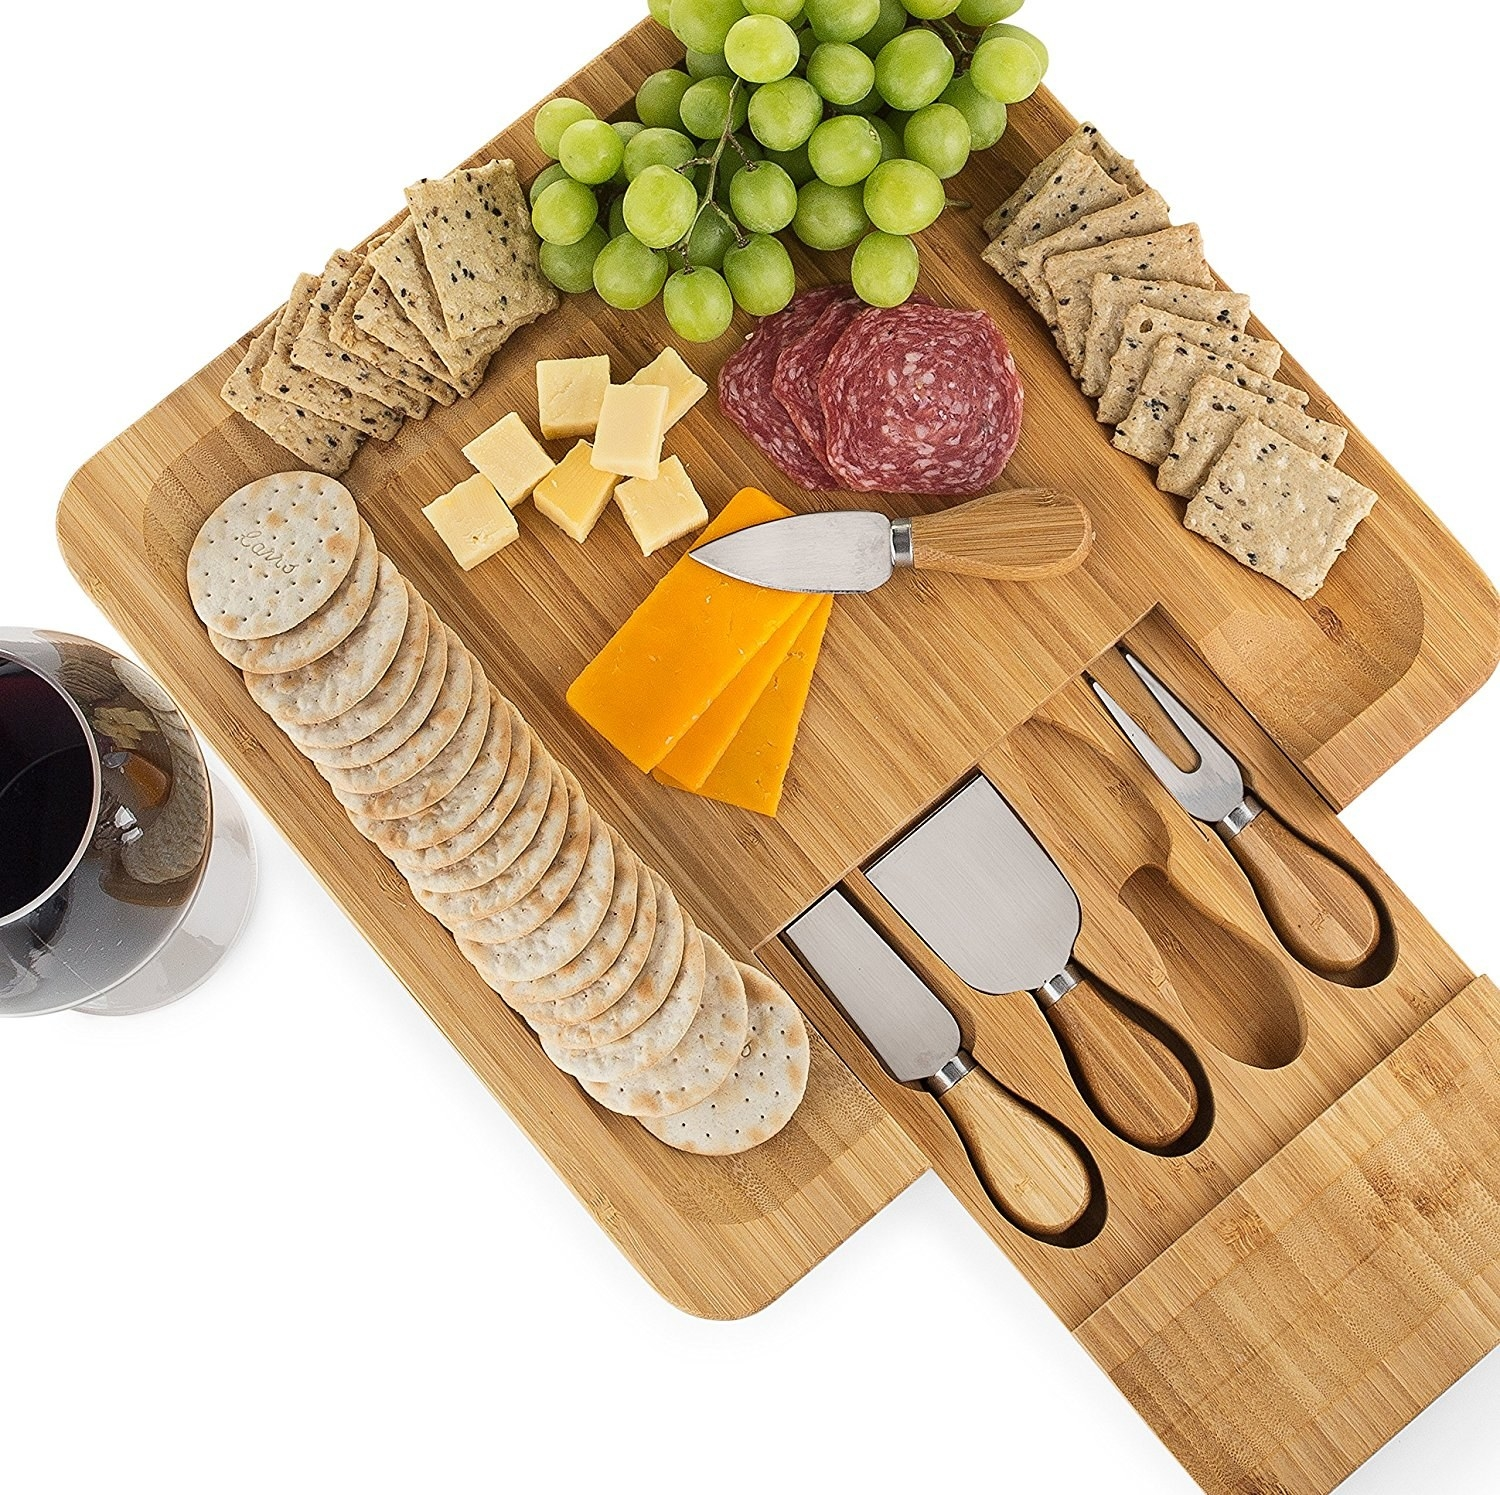 "Includes four stainless steel serving knives. Promising review: ""An excellent cheese board made of high-quality bamboo material. The finish is smooth and beautiful, and the drawer opens and closes smoothly but tightly. My boomer daughter says it's 'cool.' Highly recommended."" —Eric SandbaggerPrice: $29.99"